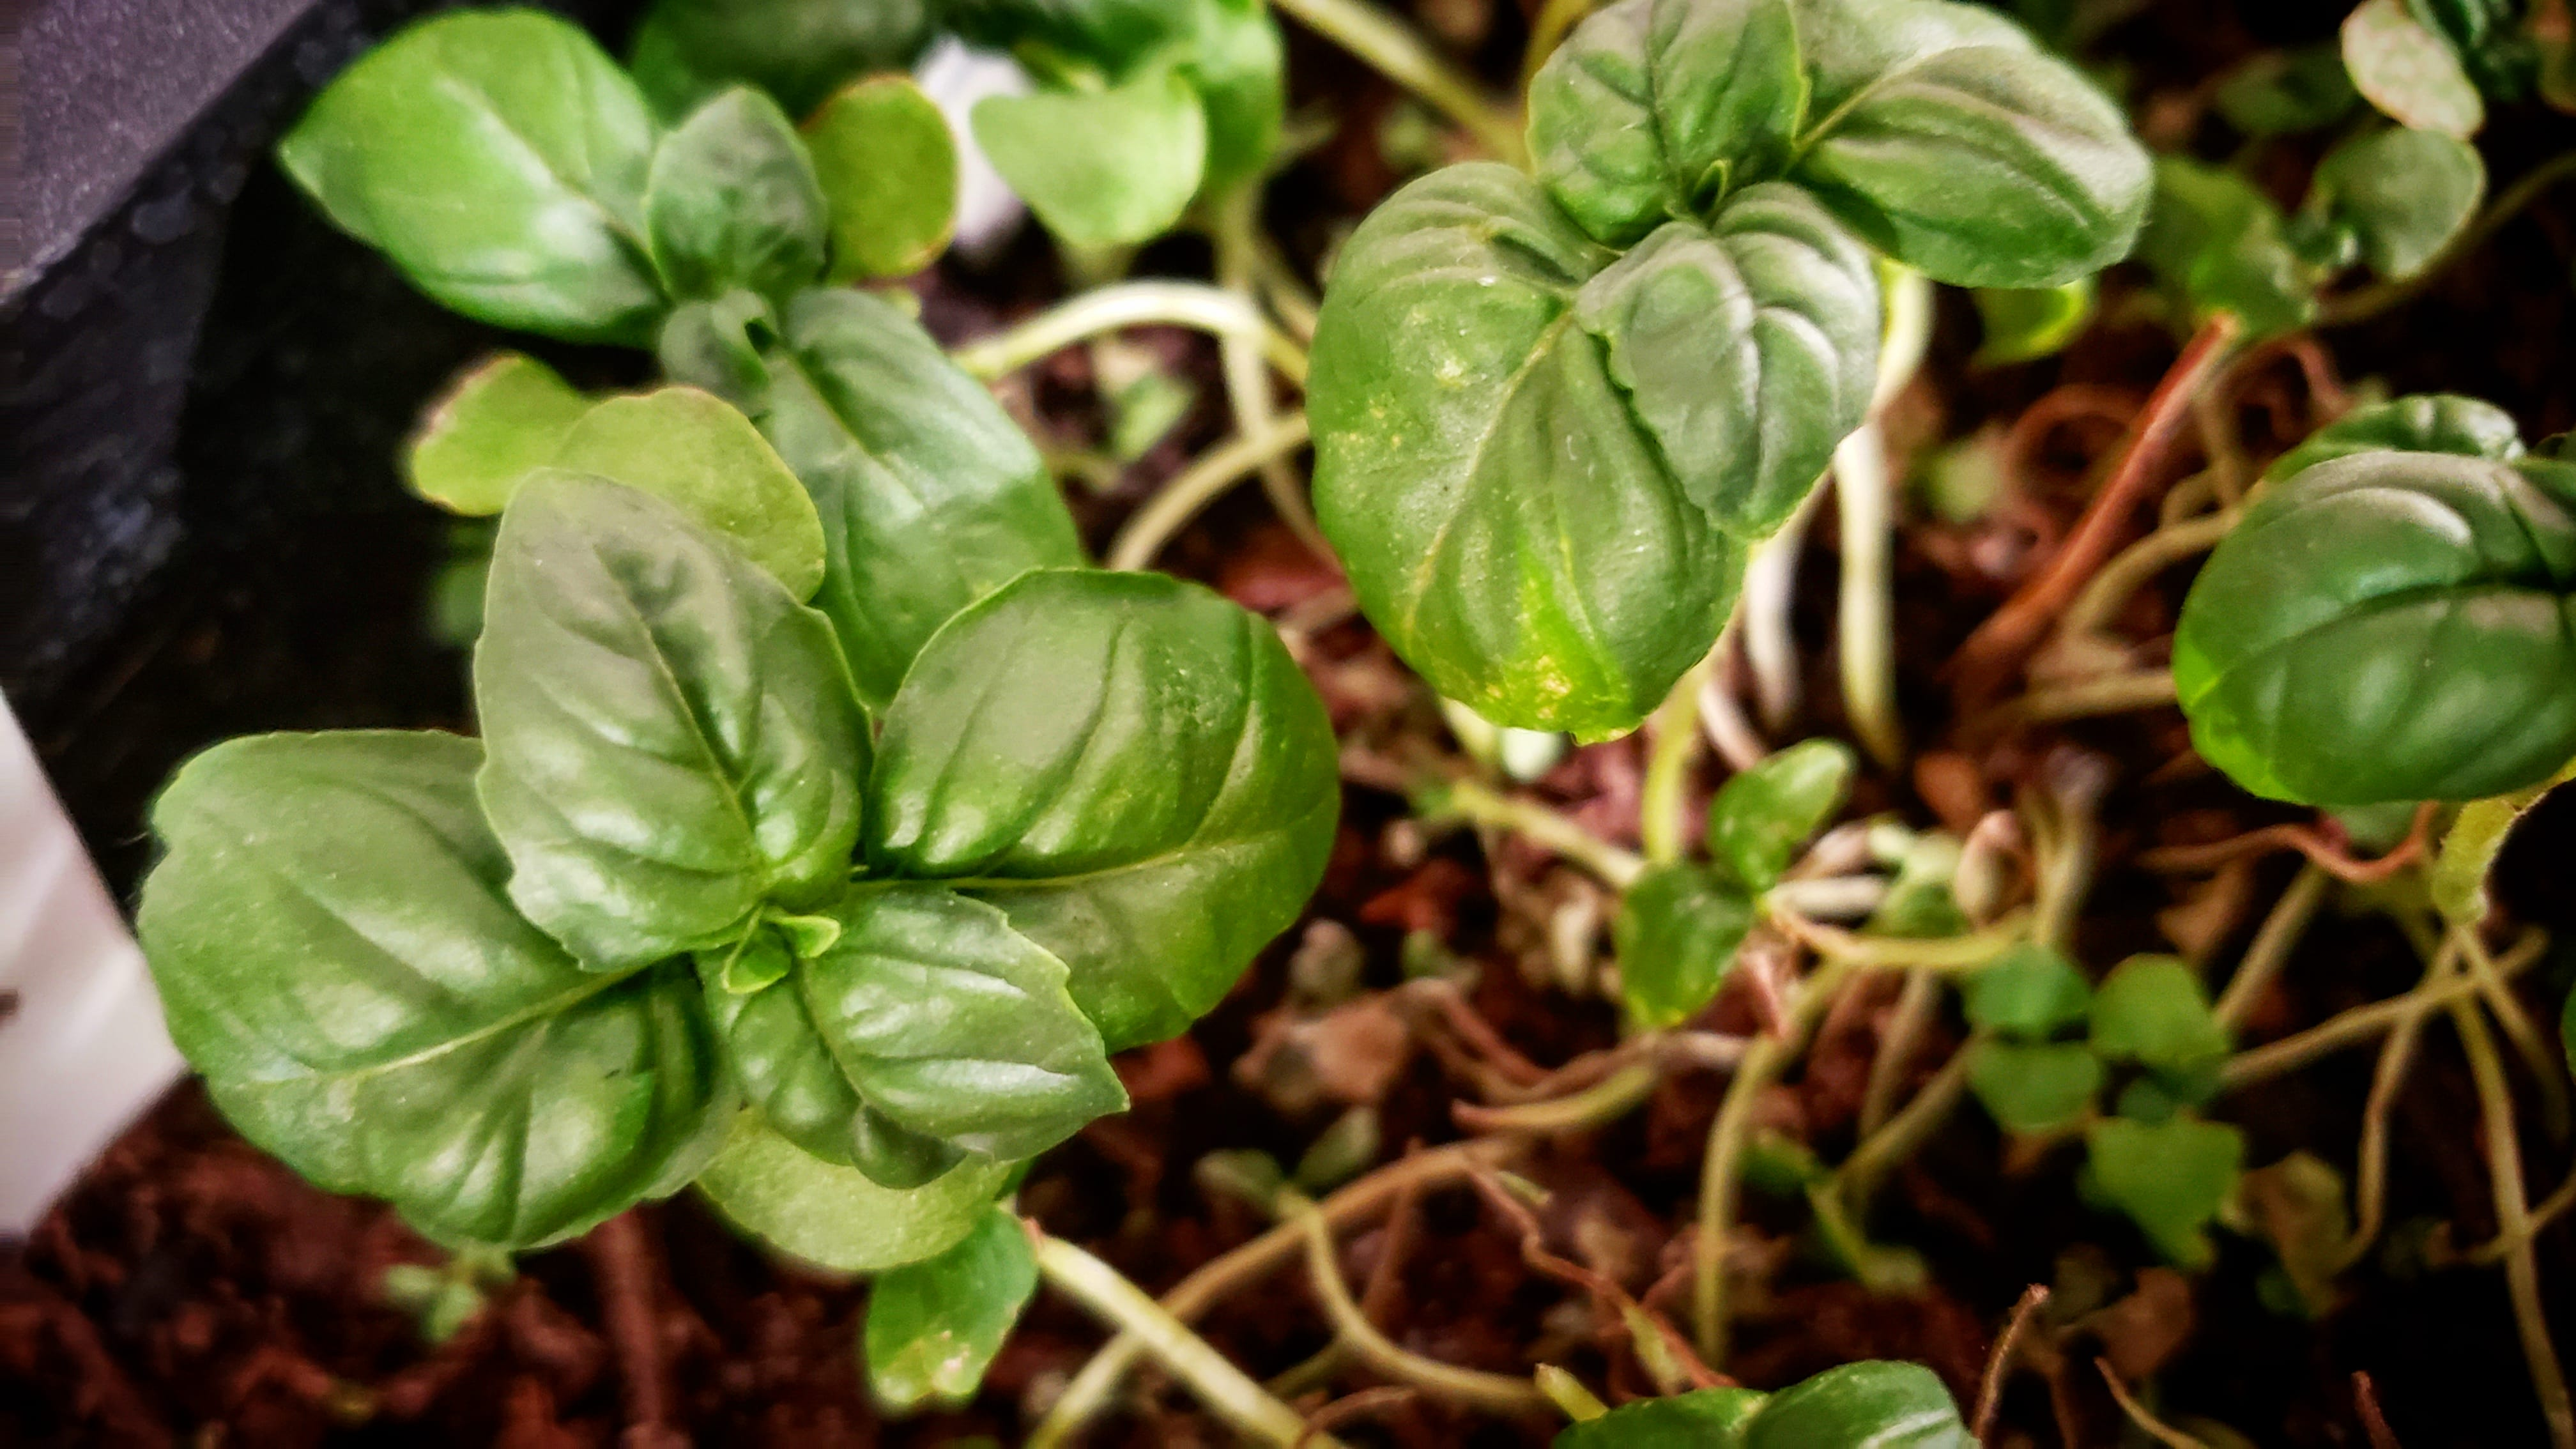 Some surviving basil